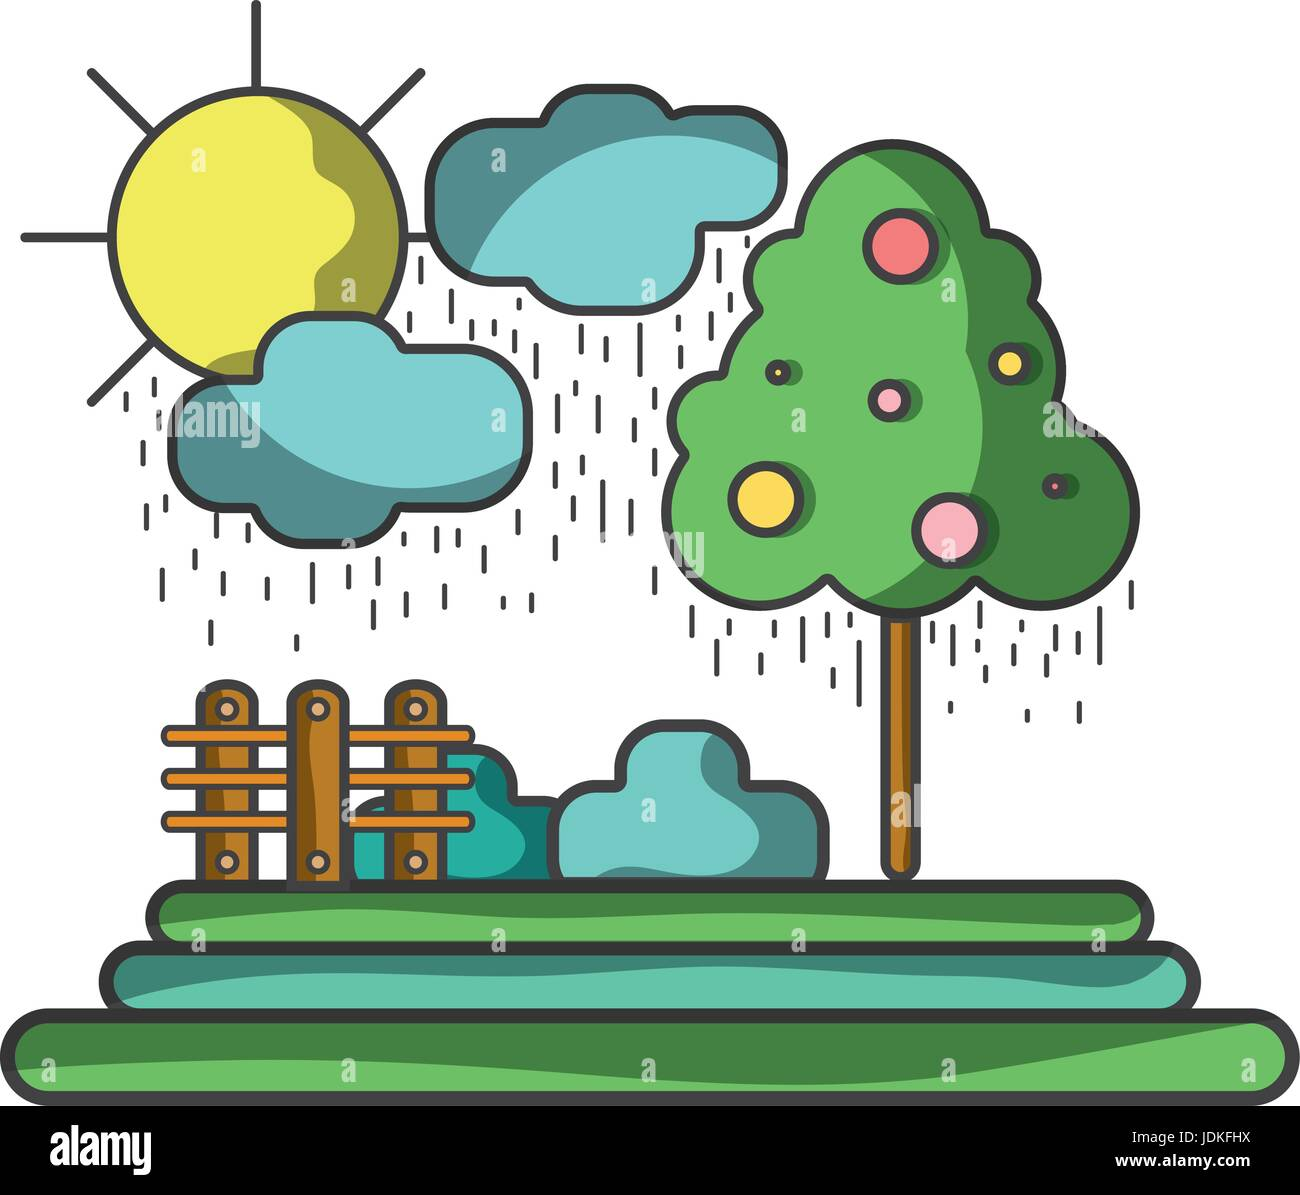 counds raining with tree and grid wool - Stock Vector